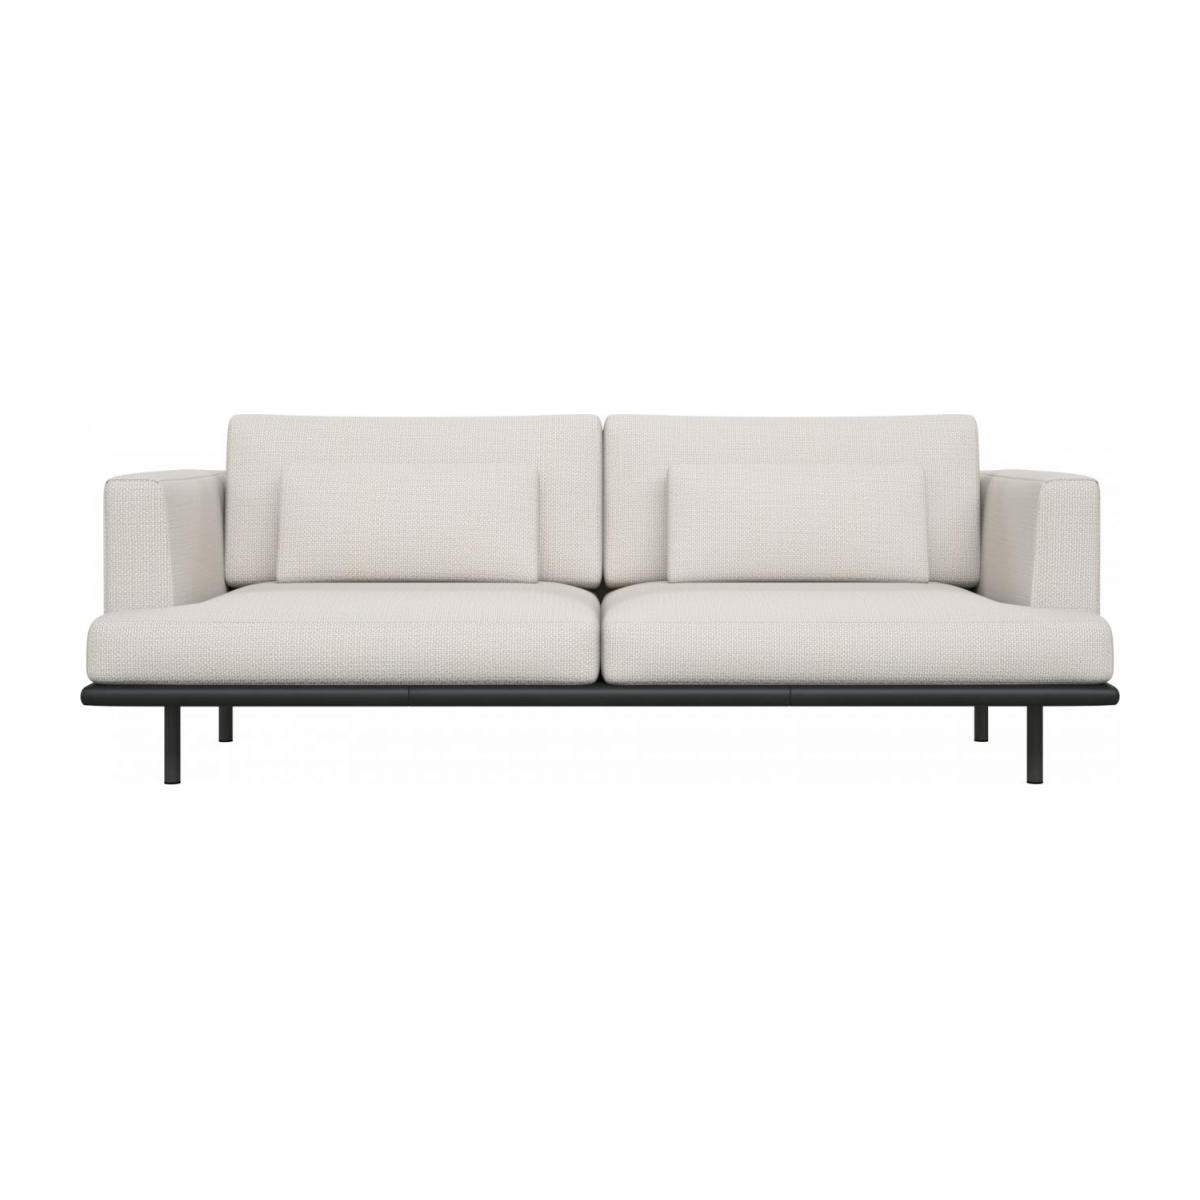 3 seater sofa in Fasoli fabric, snow white with base in black leather n°3